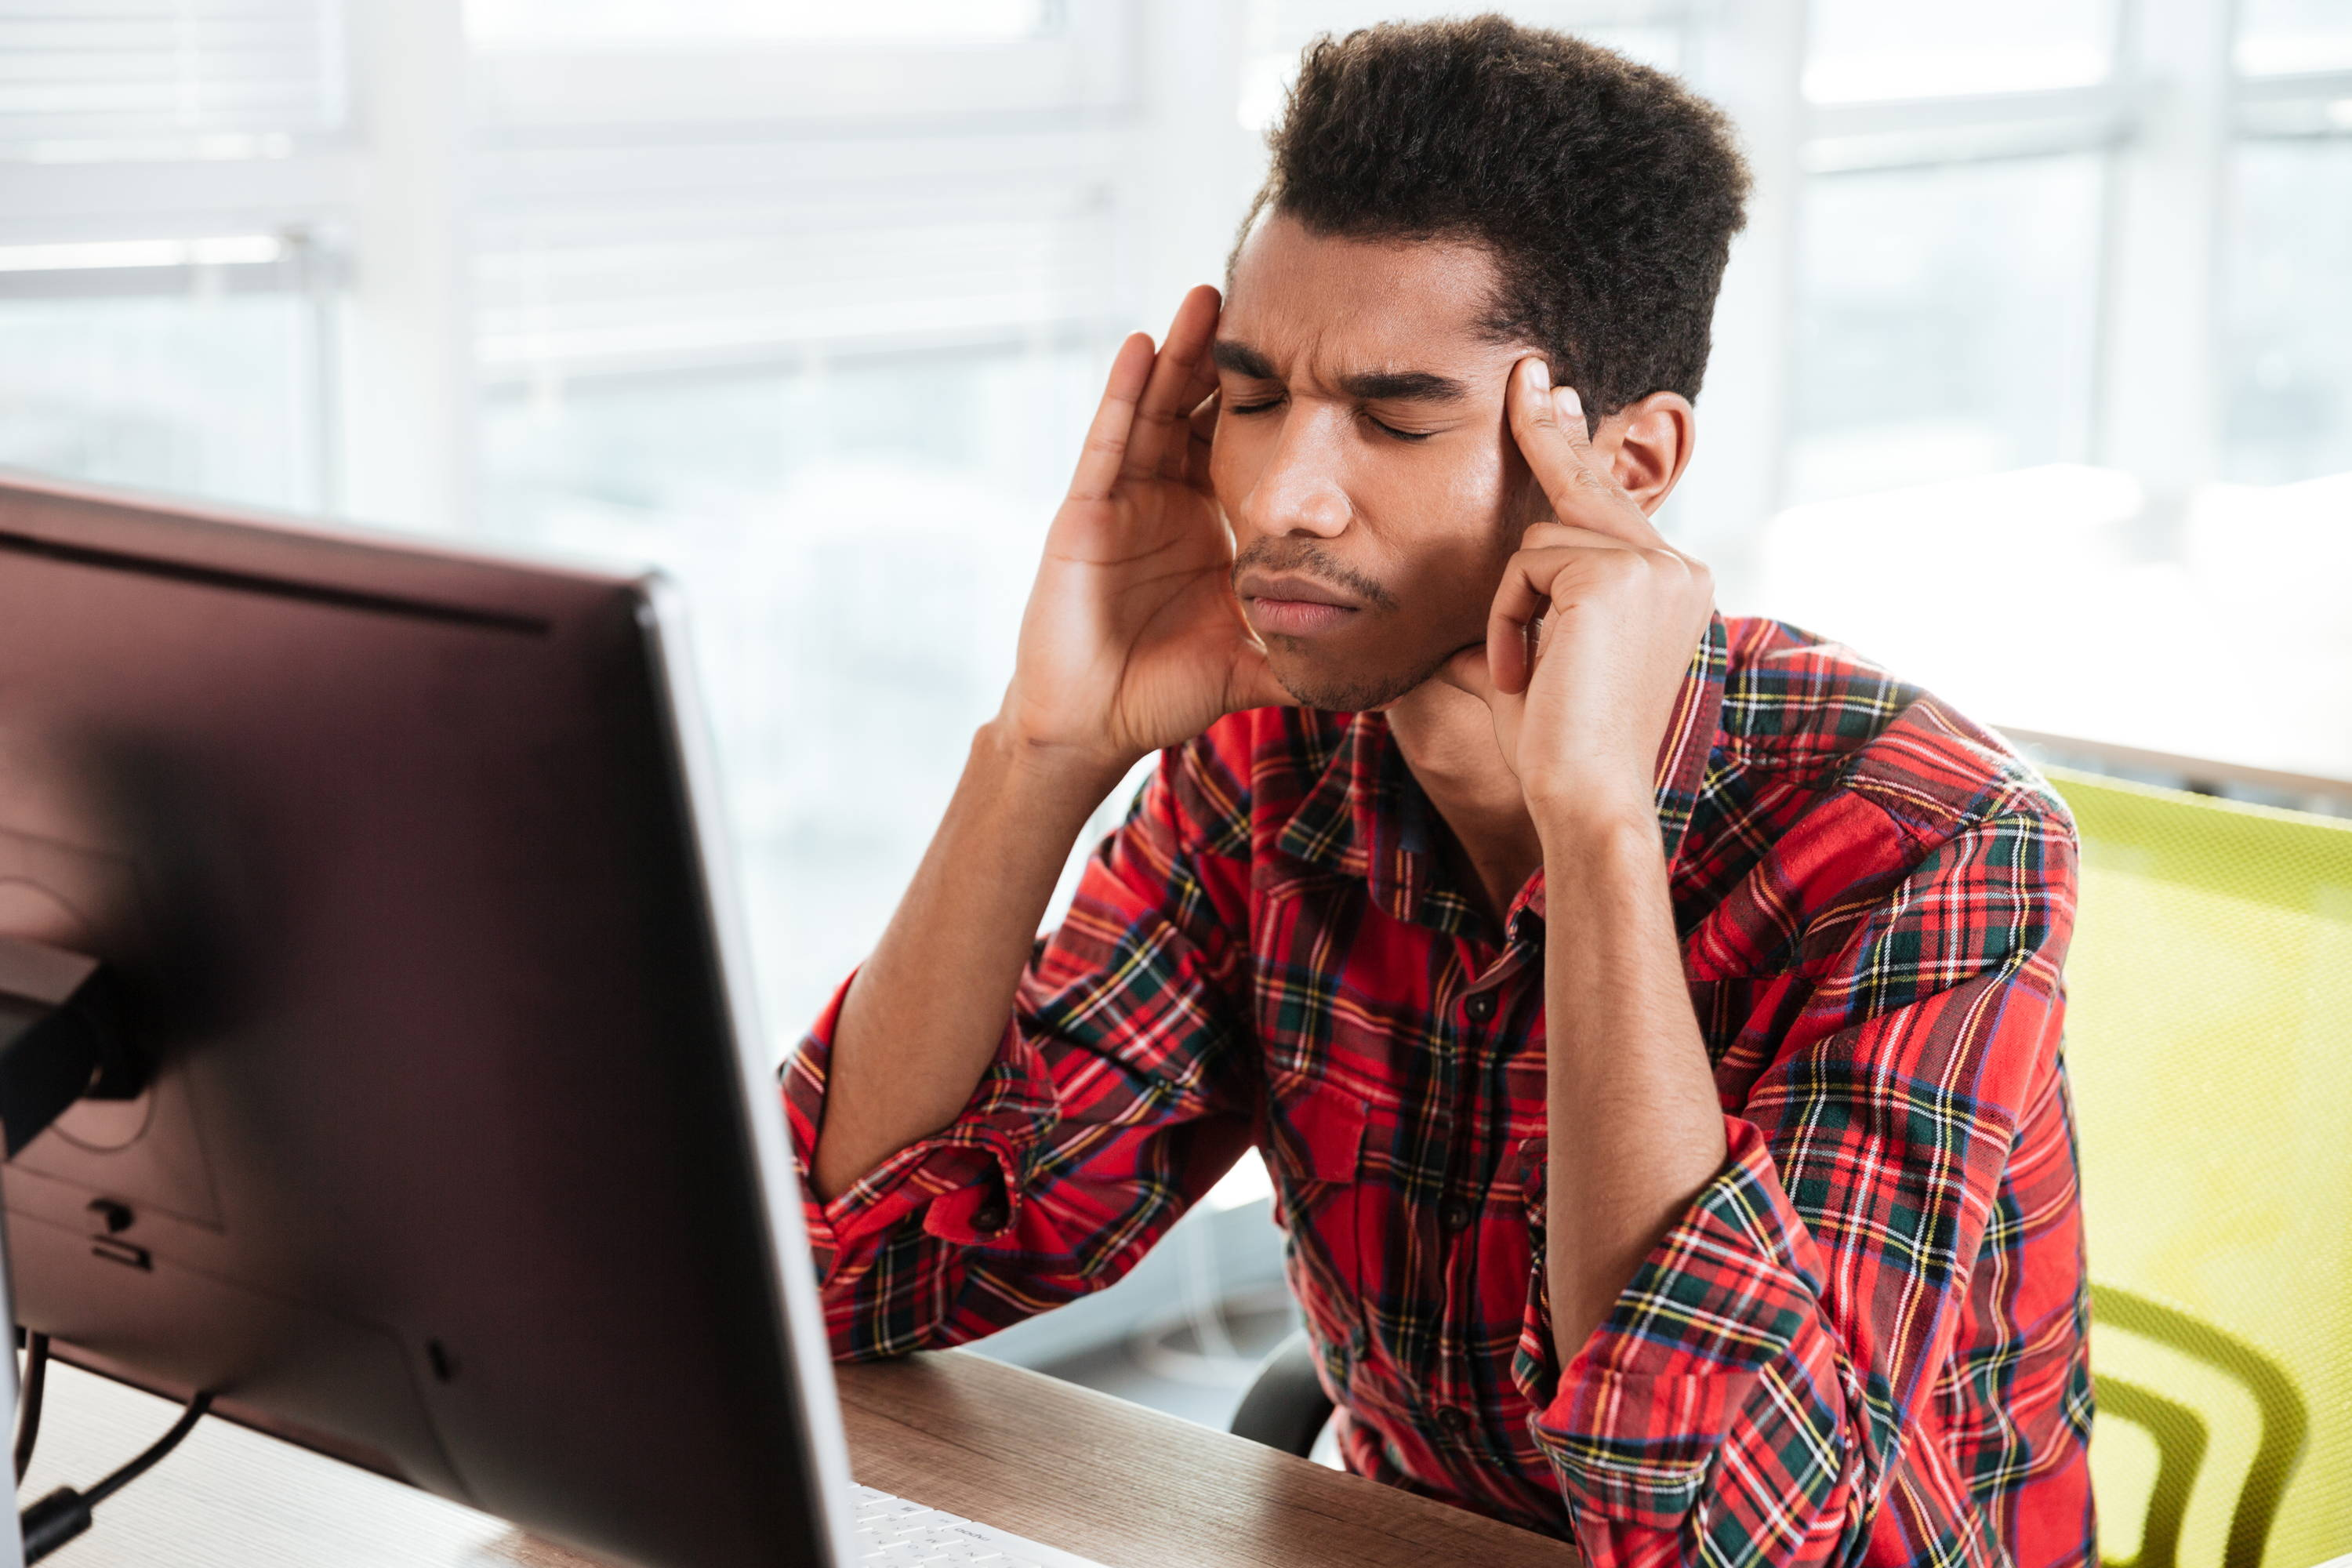 Man holing his temples wining with pain with his eyes closed in front of a computer.